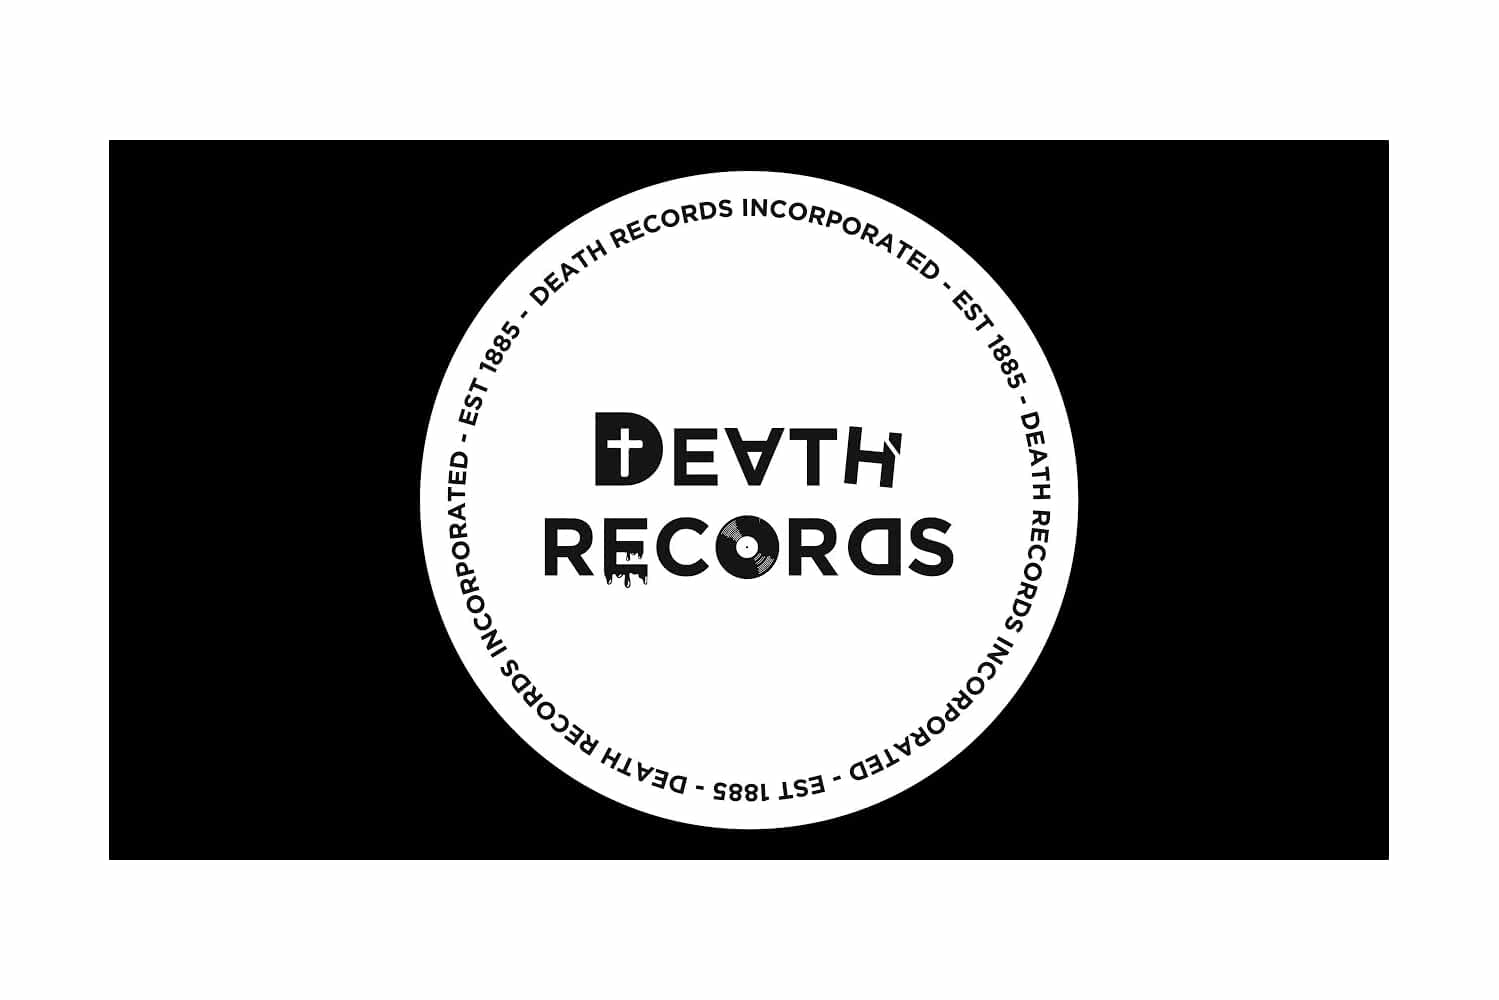 Death Records (2018)